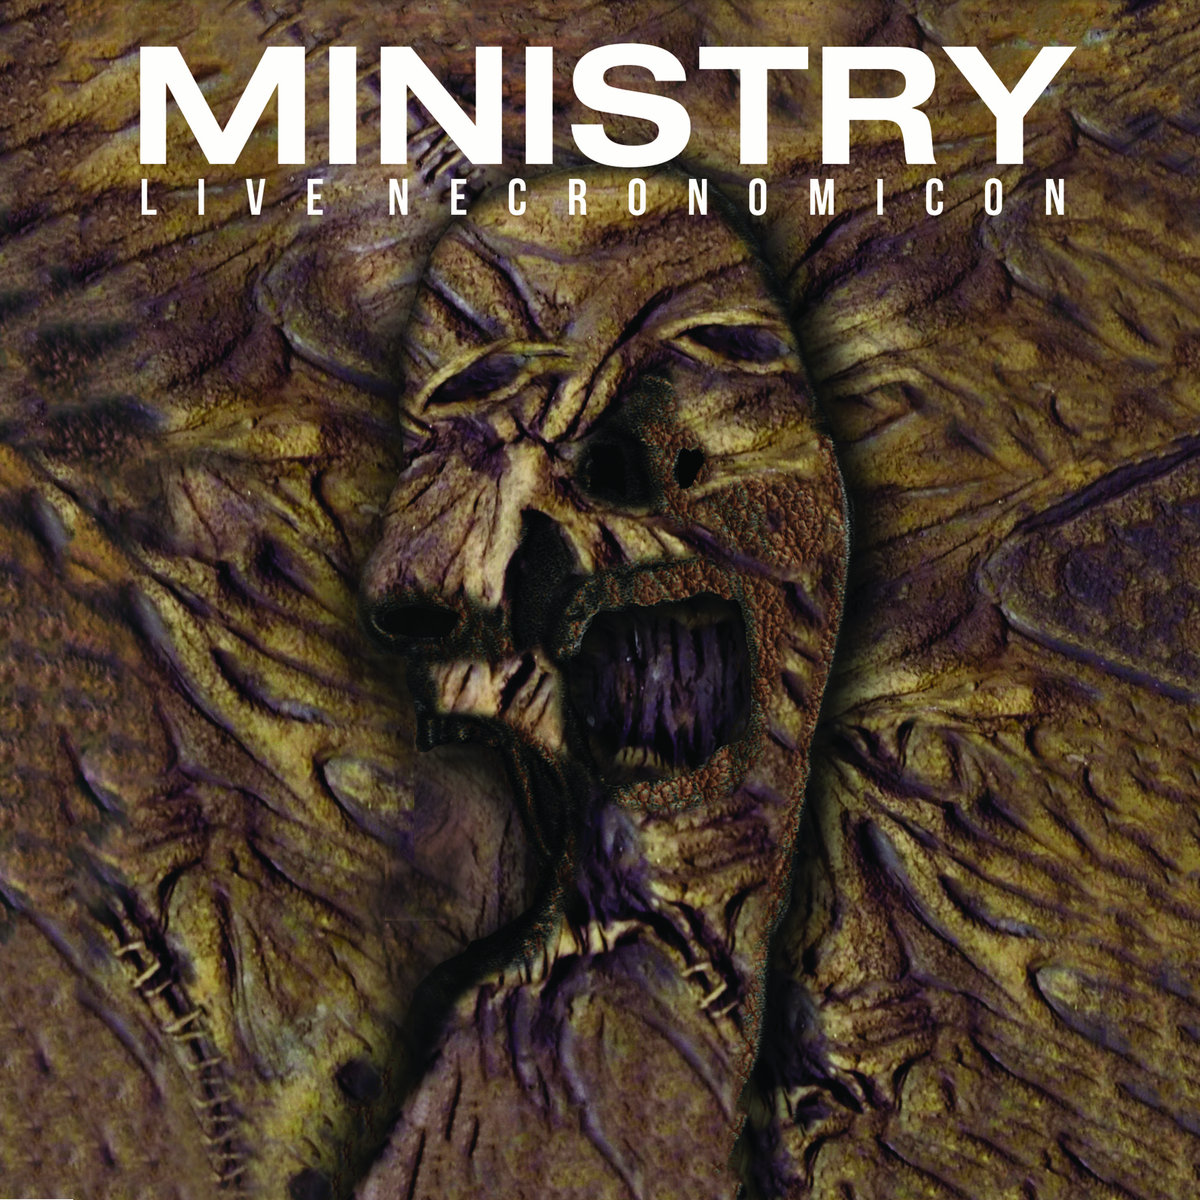 Ministry - Live Necronomicon - Album Cover